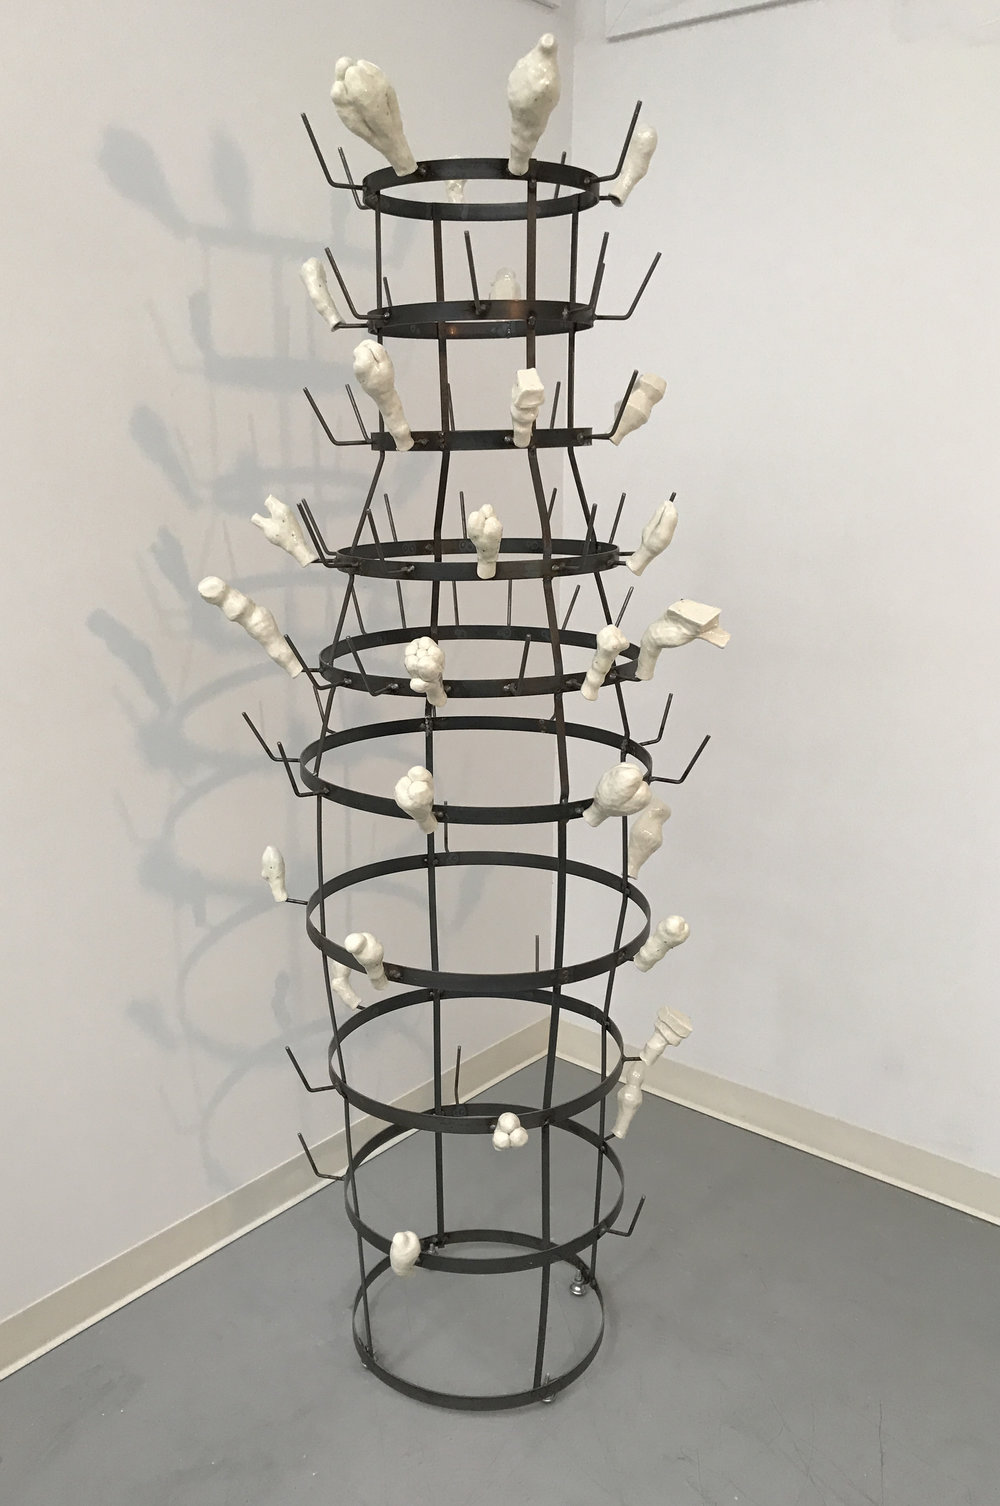 FINDING ELSA  (object) (2017) Steel and porcelain, 83 x 40 x 40""